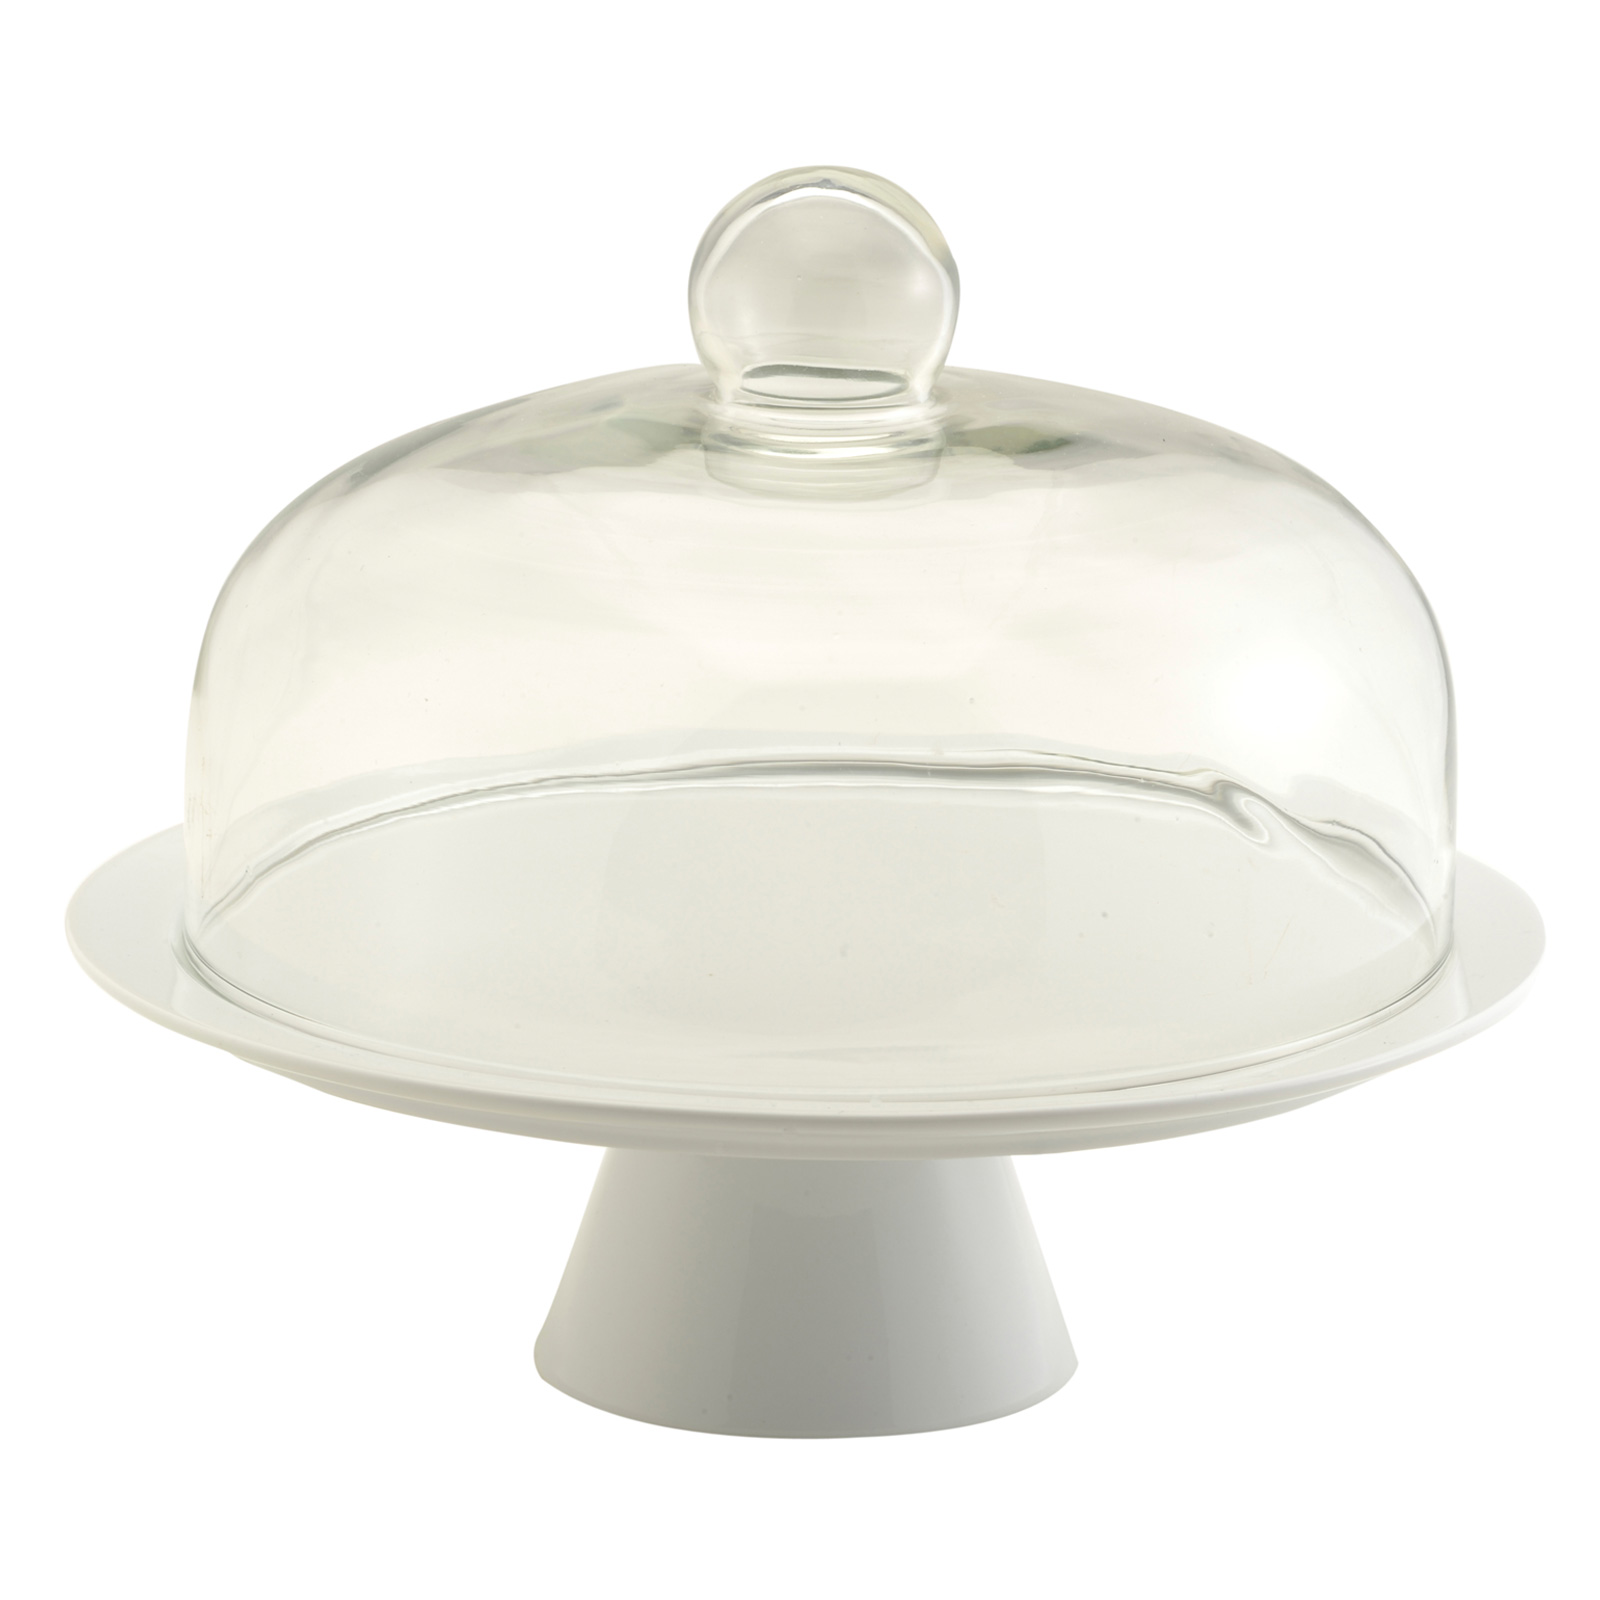 Cake Stand with Dome - Complete Set